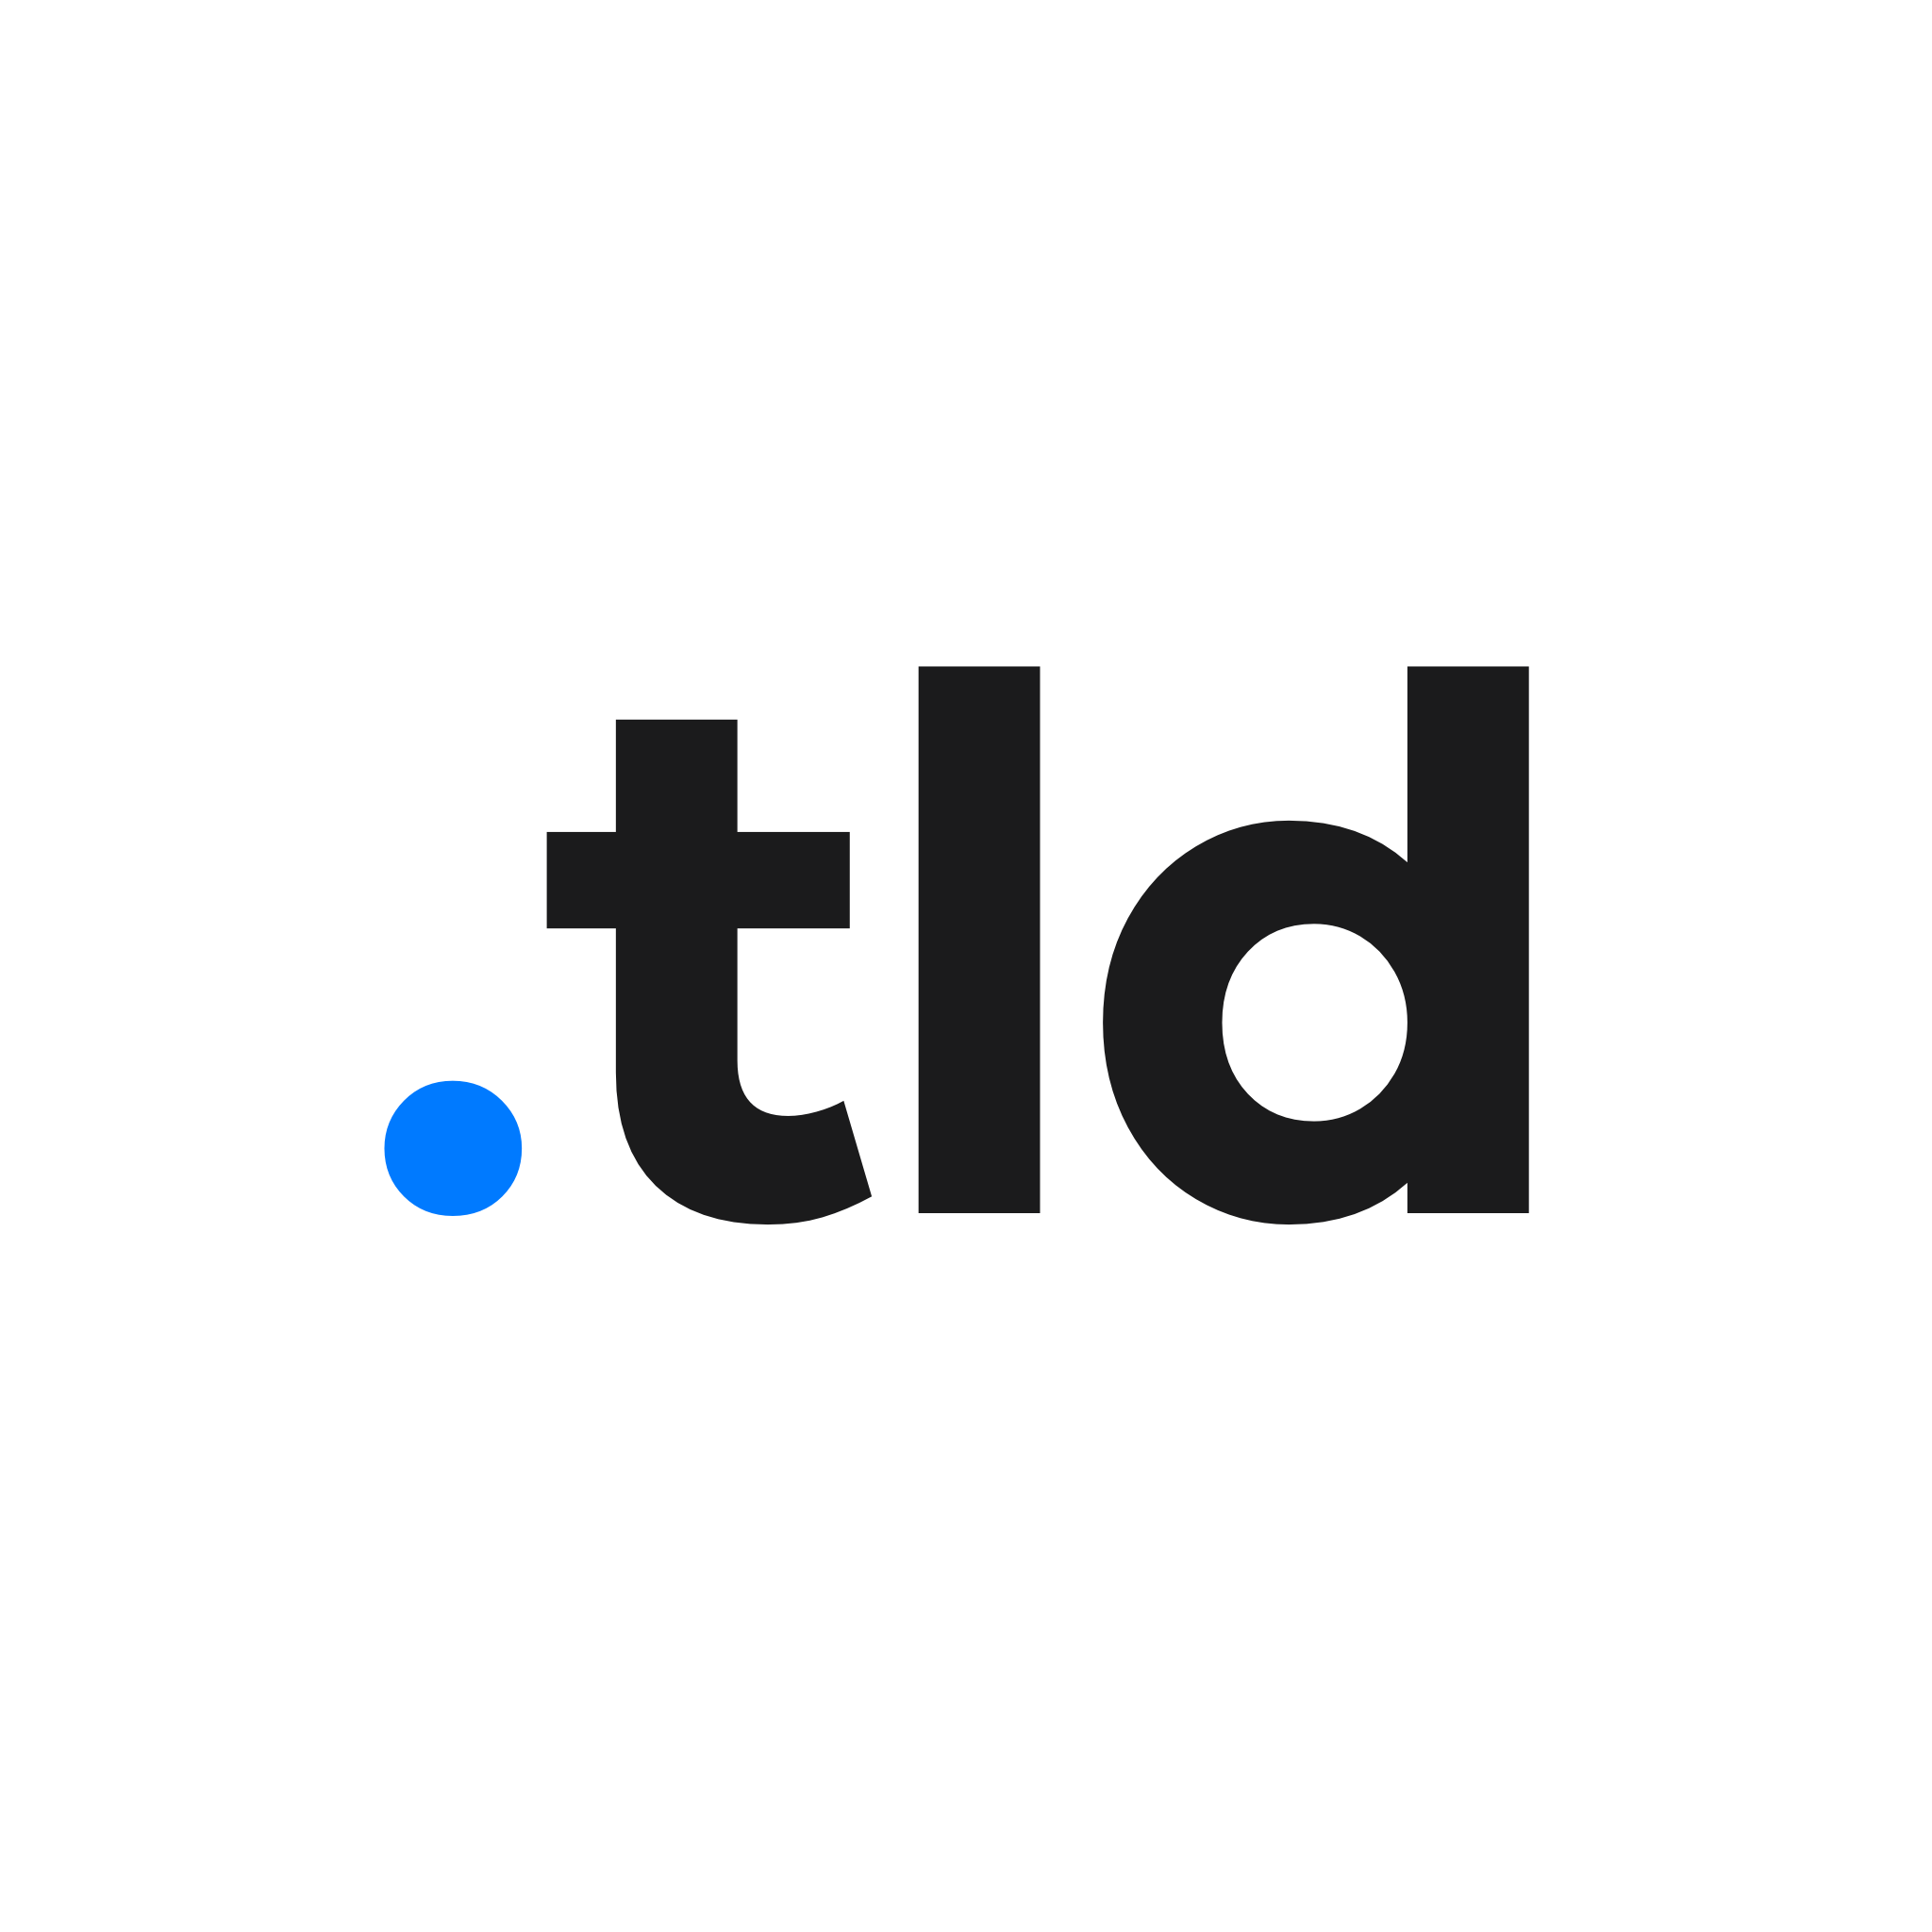 Apple TLD